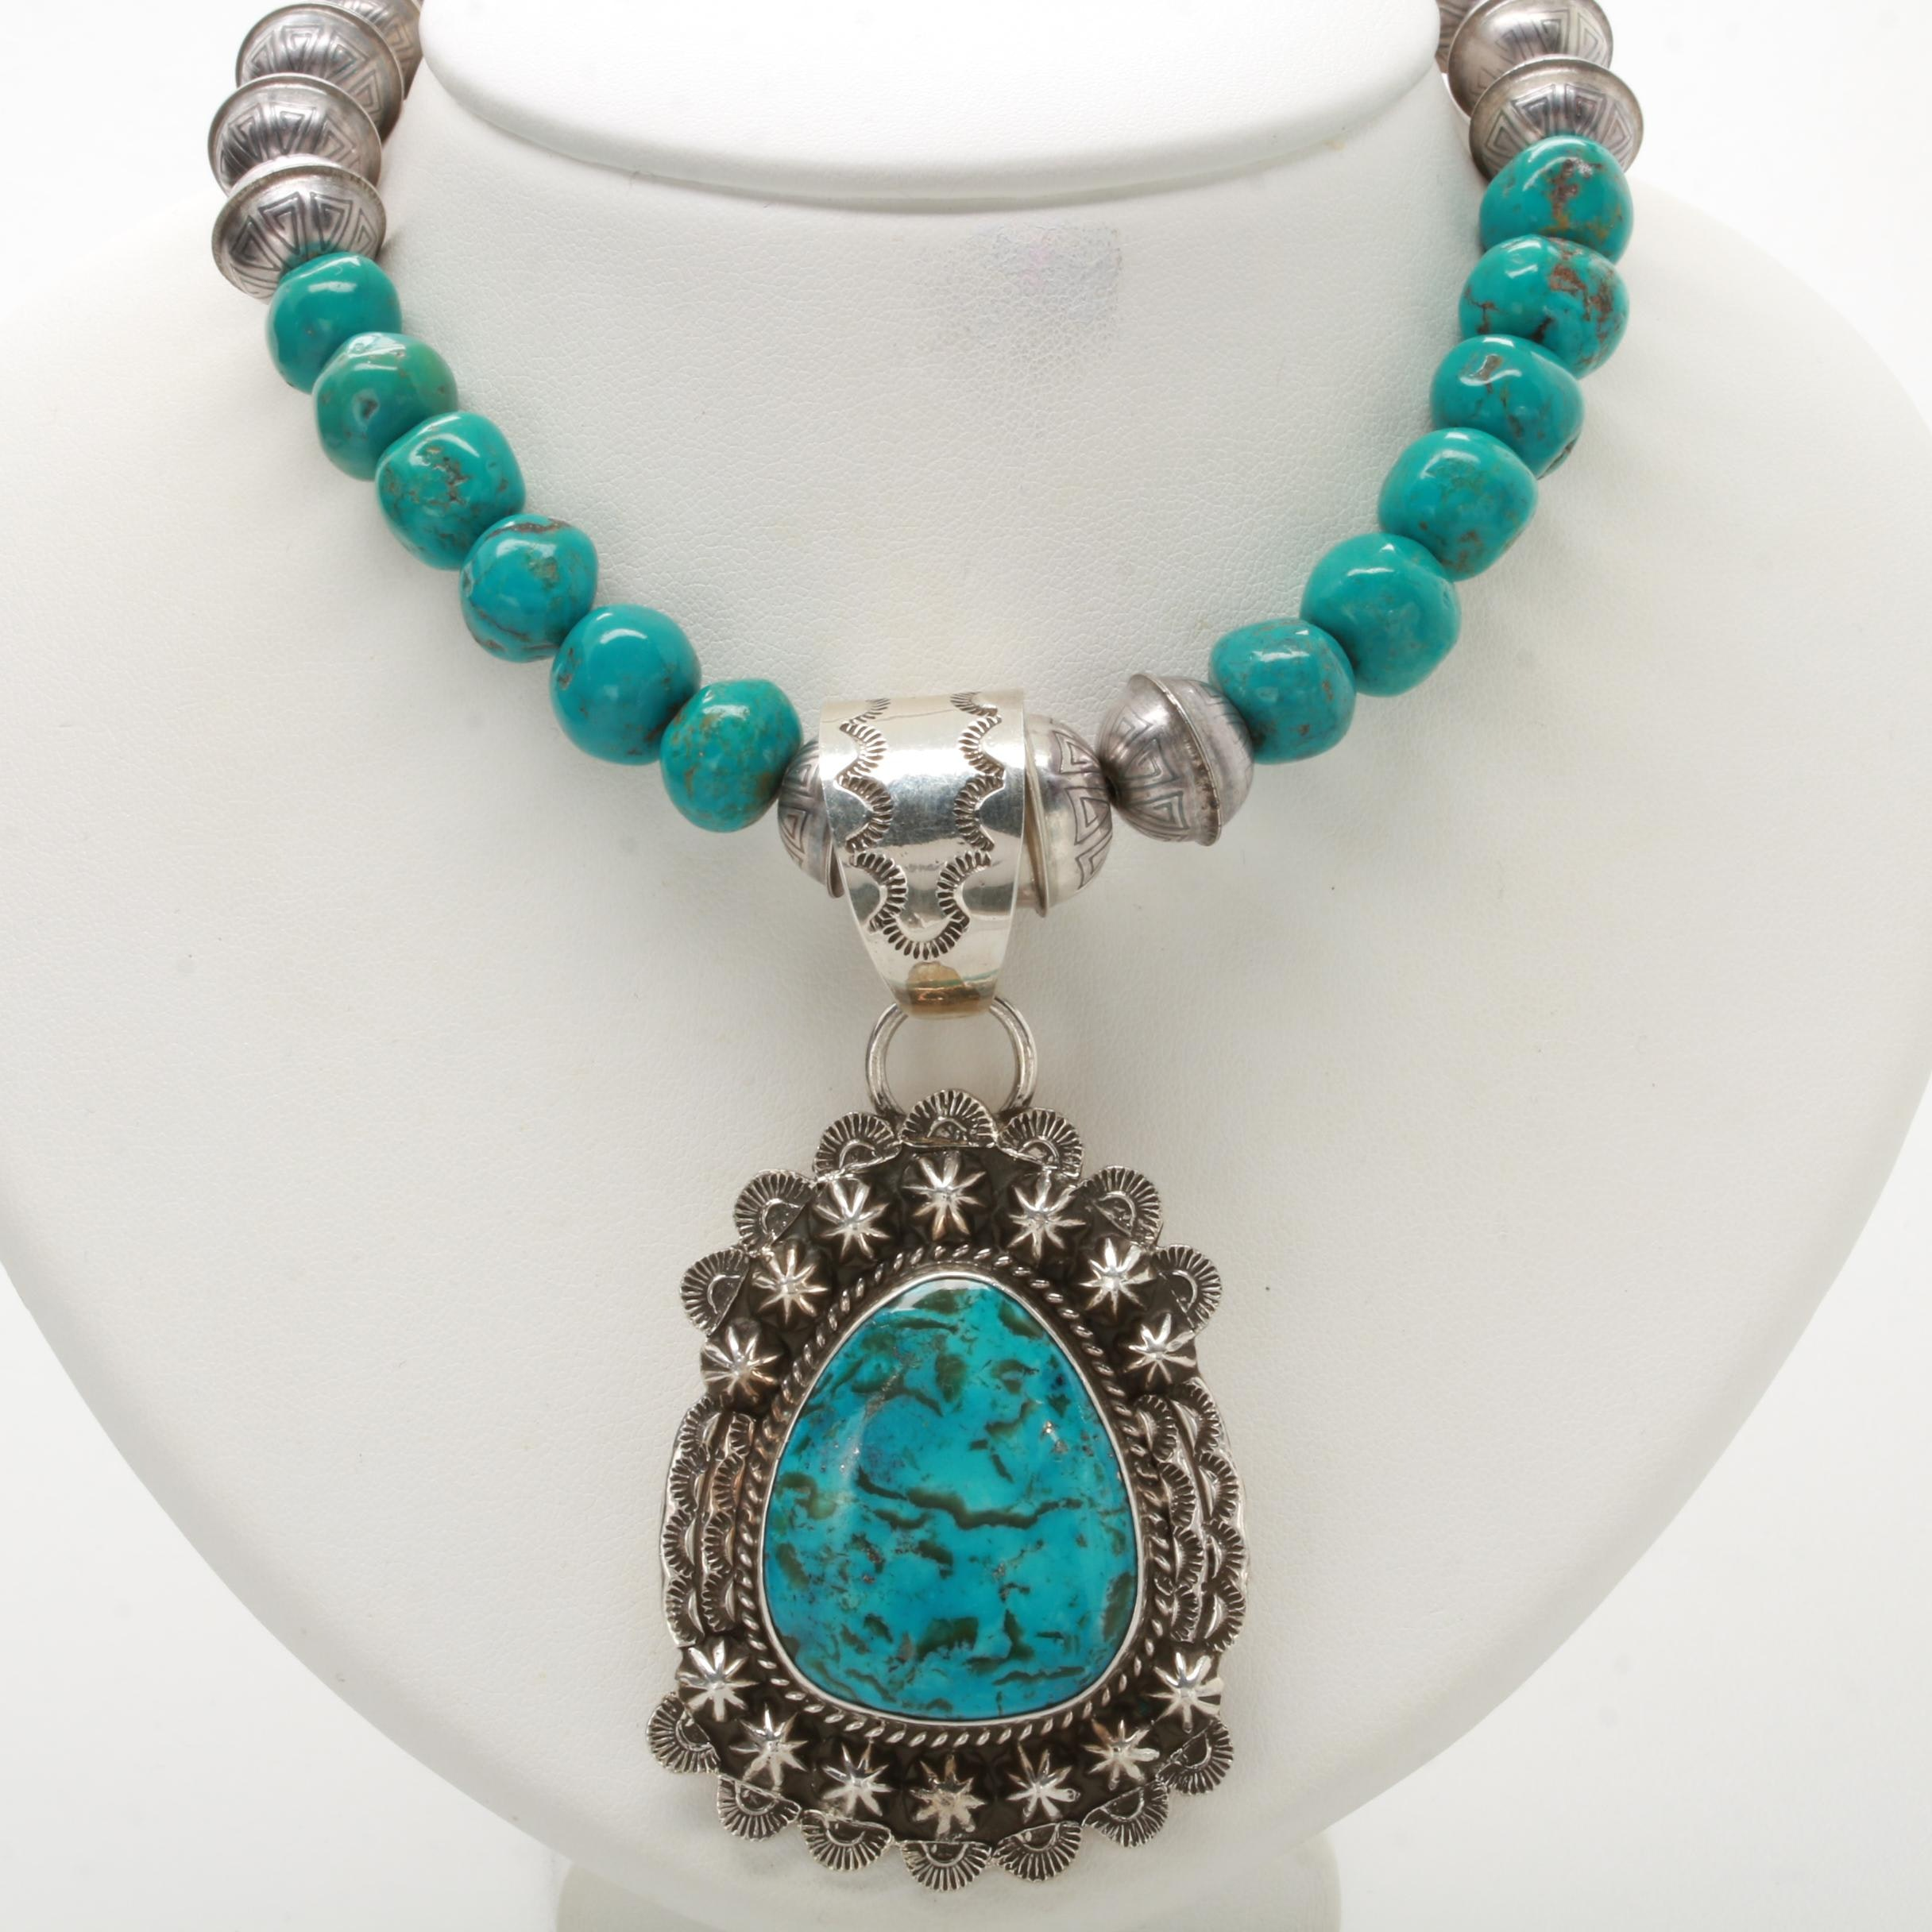 Southwest Style Sterling Silver Turquoise and Reconstituted Turquiose Necklace